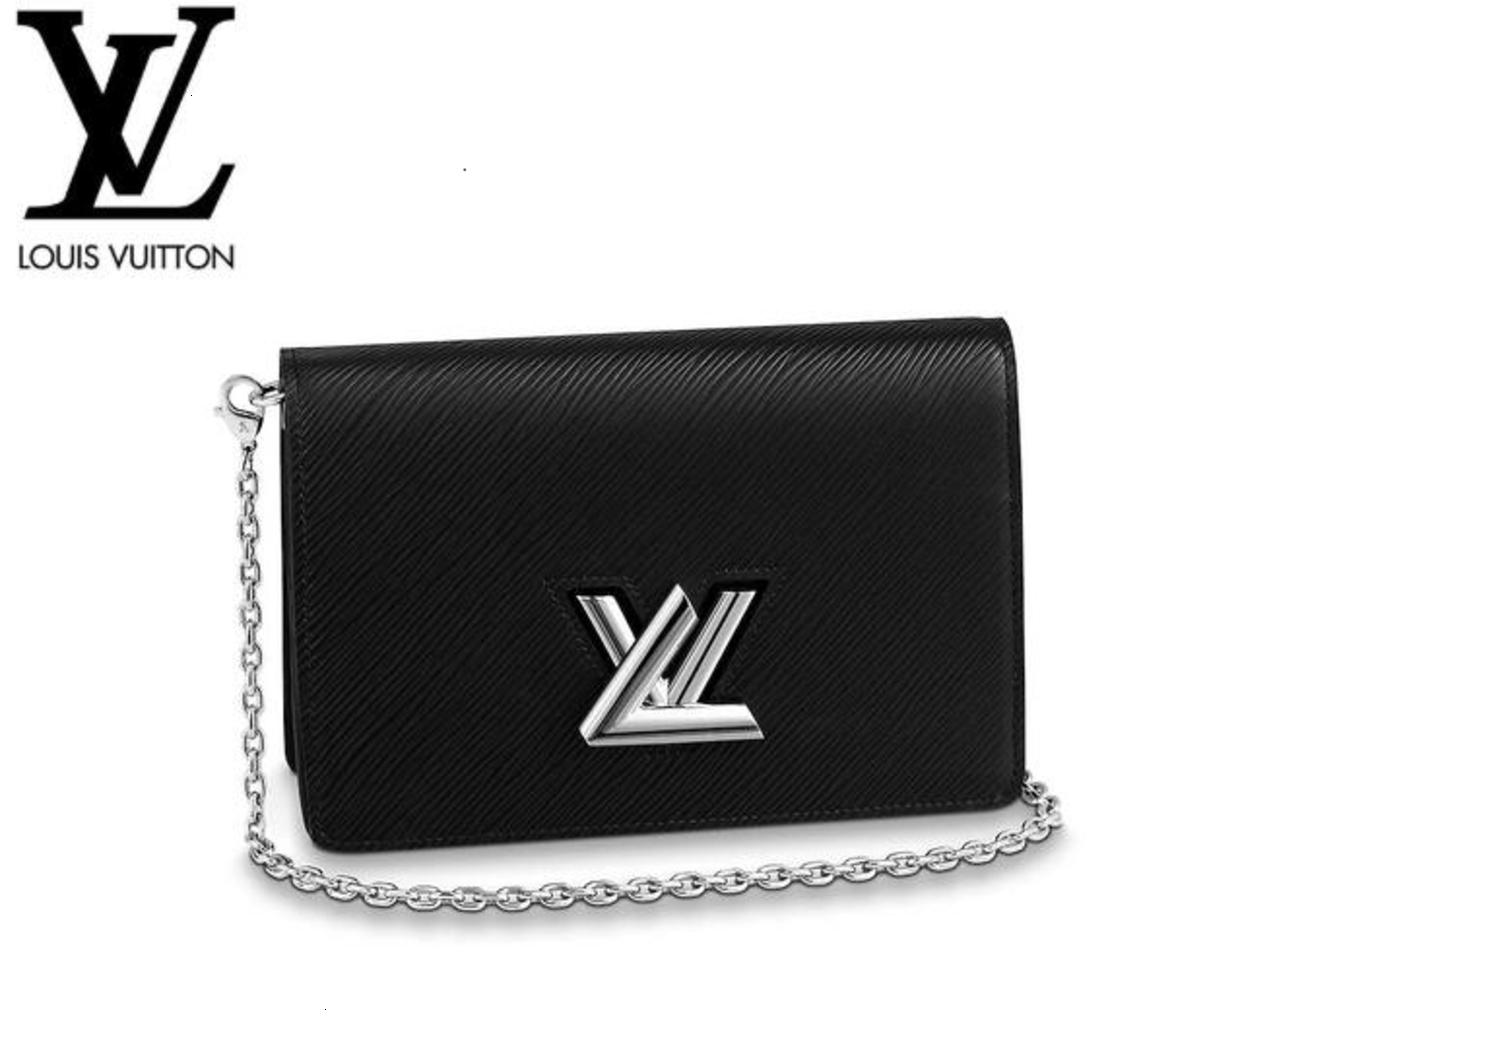 M68560 Twist Belt Chain Wallet Noir Women HANDBAGS ICONIC BAGS TOP HANDLES SHOULDER BAGS TOTES CROSS BODY BAG CLUTCHES EVENING